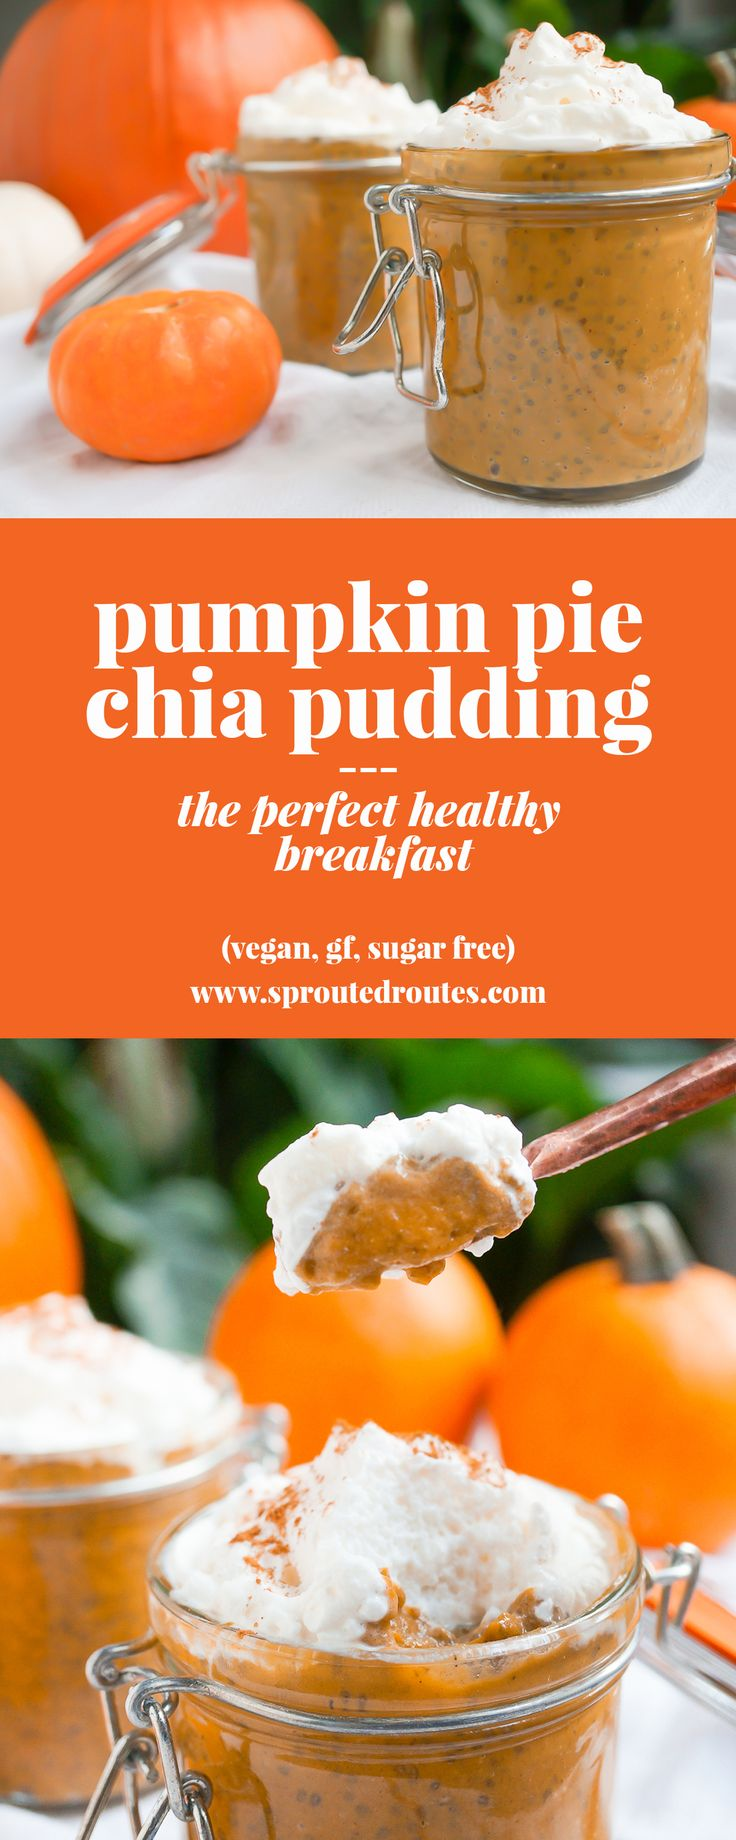 This Pumpkin Pie Chia Pudding recipe is a healthy way to celebrate fall flavors. Packed with nutrients and flavor, it tastes just like pumpkin pie filling!